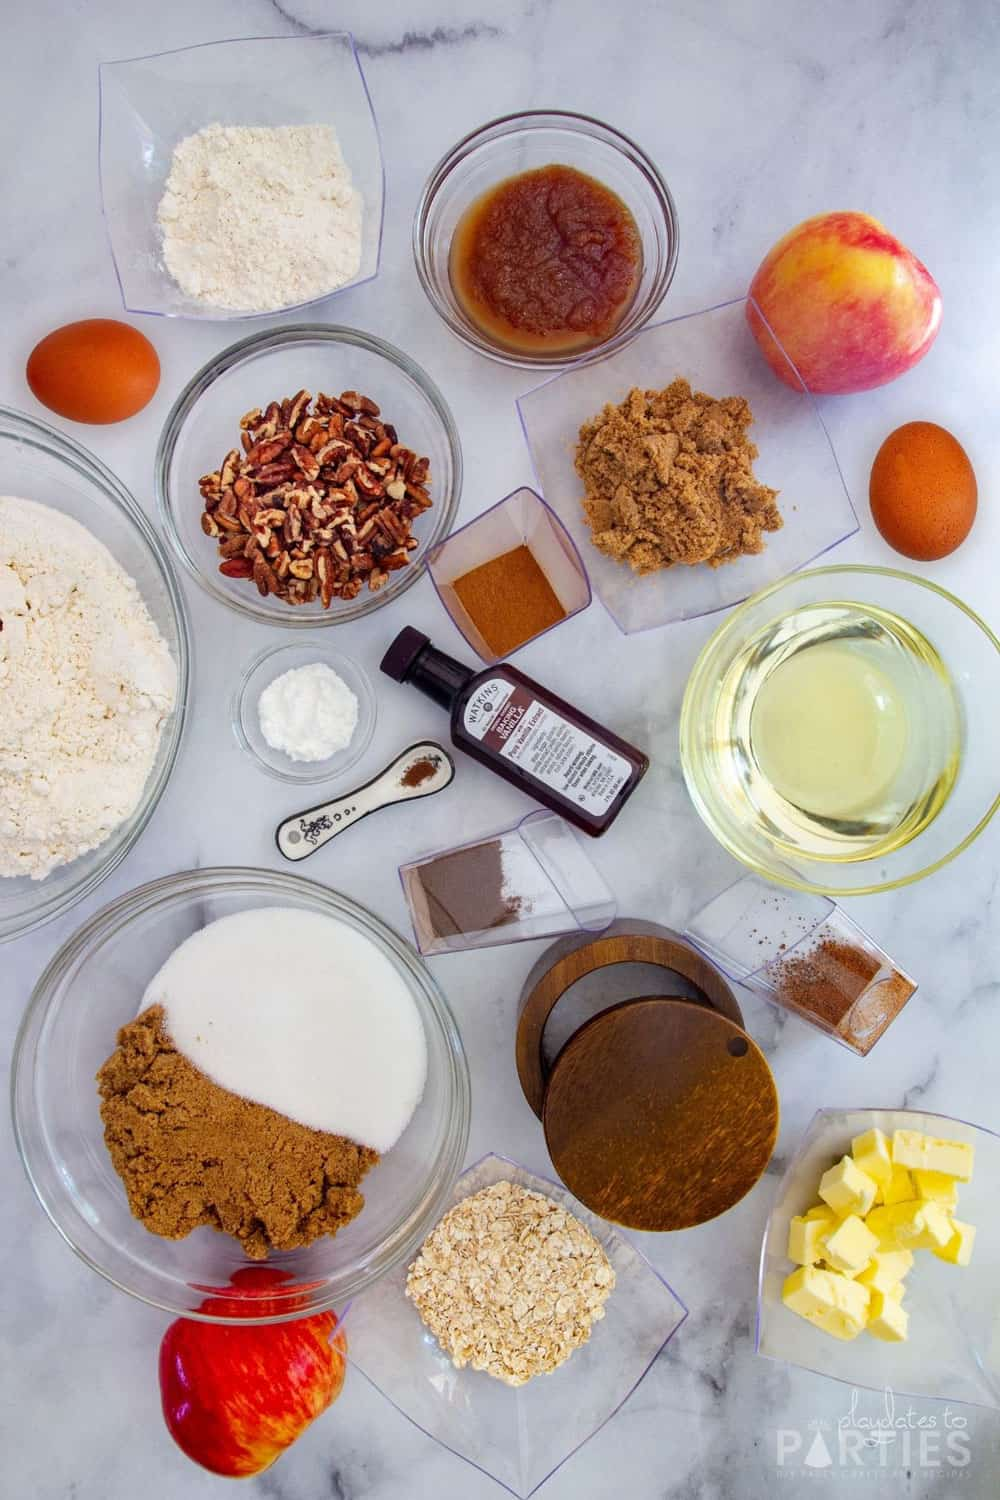 ingredients needed to make apple bread.